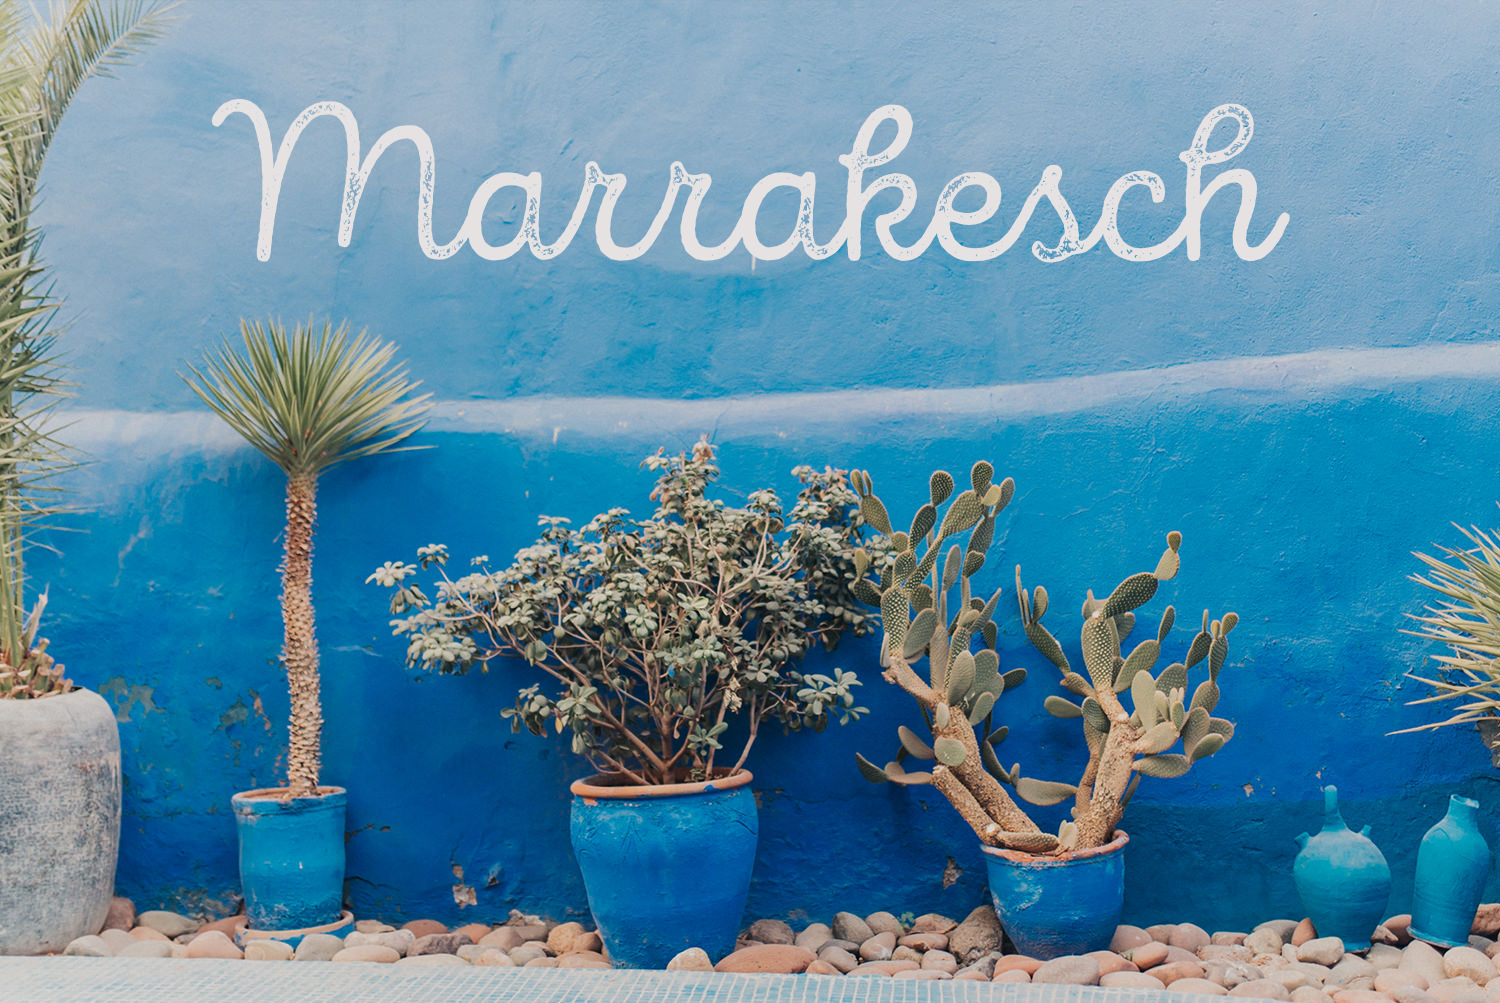 Marrakech-Marrakesch-travel-photography-destination-photographer-travel-with-kids-urlaub-mit-kindern